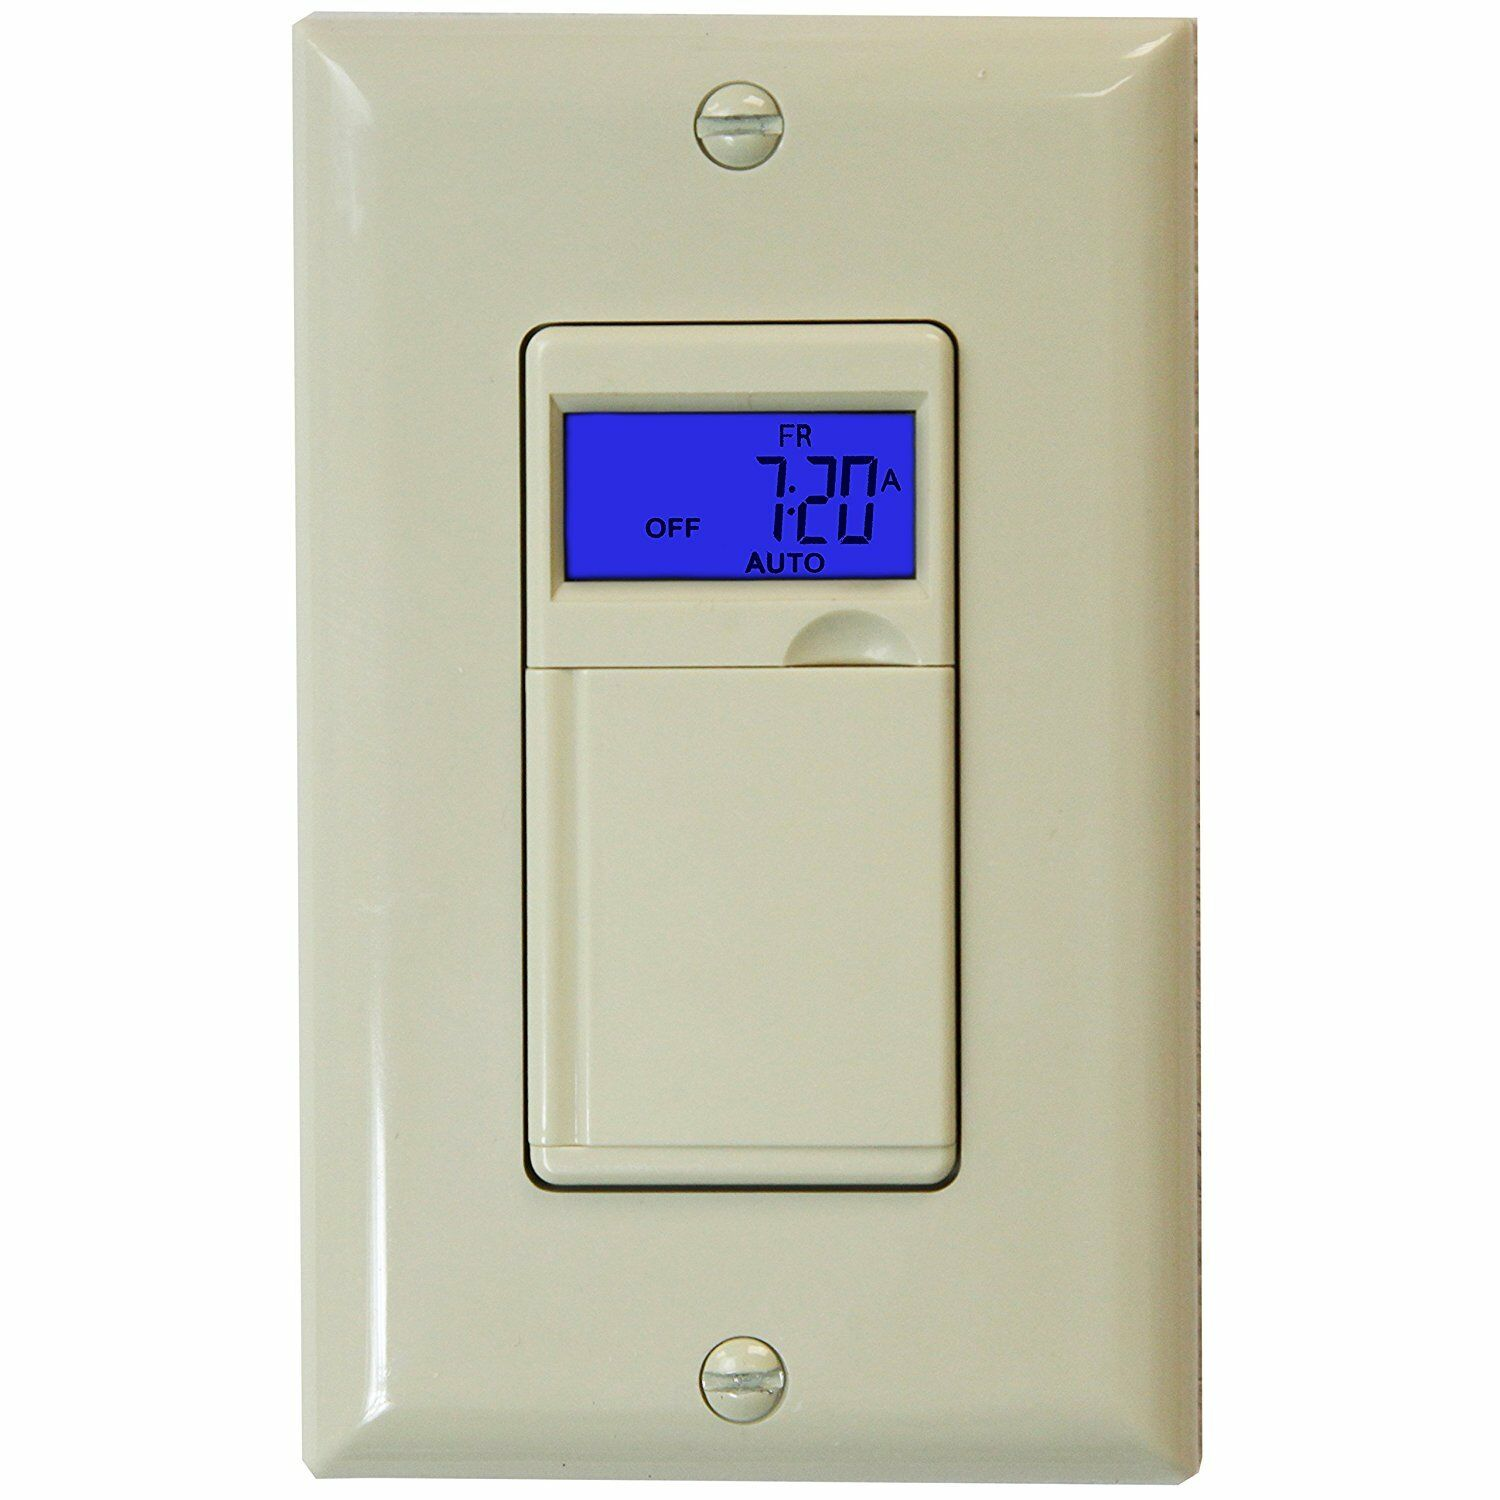 day digital programmable timer light switch for motors fans lights. Black Bedroom Furniture Sets. Home Design Ideas